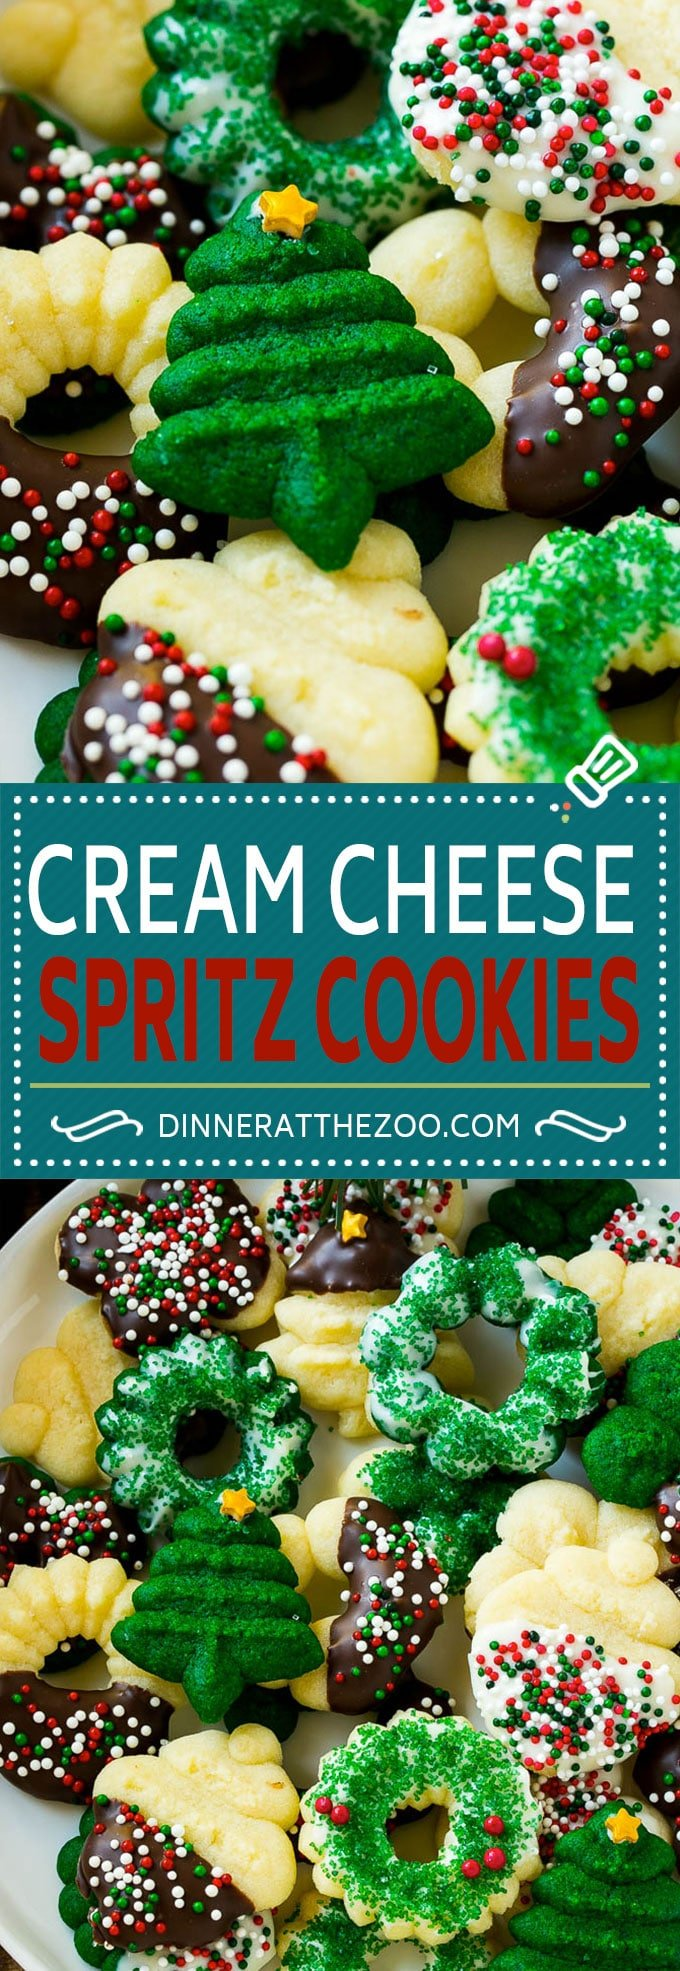 Cream Cheese Spritz Cookie Recipe | Butter Spritz Cookies | Best Spritz Cookies | Holiday Cookies | Christmas Cookies #cookies #christmas #baking #holiday #dessert #dinneratthezoo